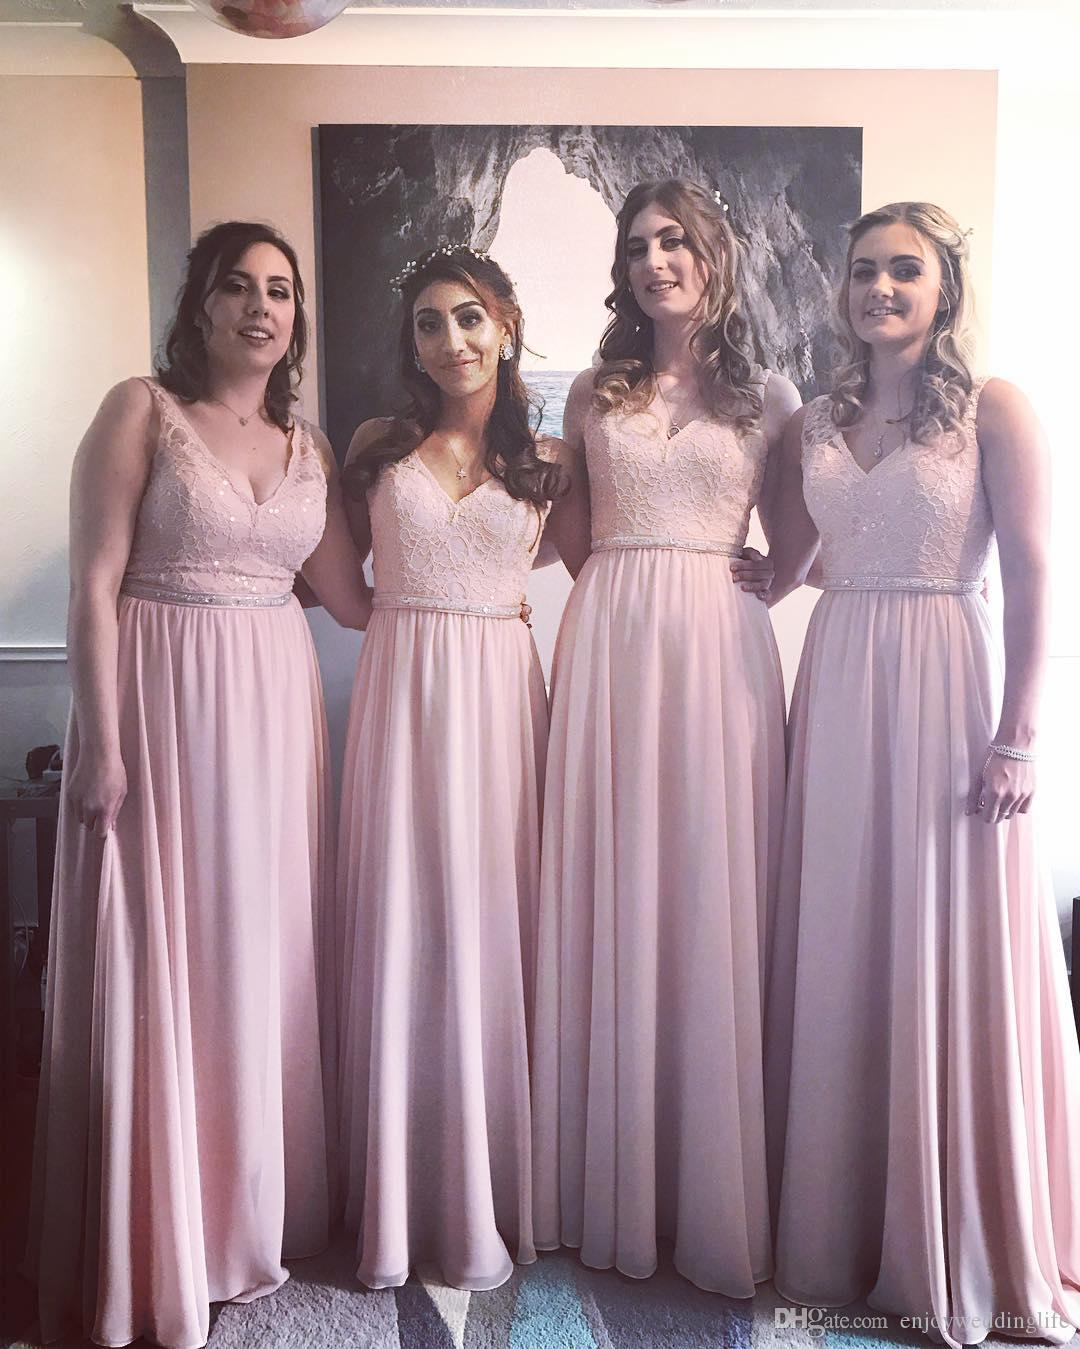 Light Pink V Neck Lace Bridesmaid Dresses 2018 New Elegant A Line Chiffon  Long Maid Of Honor Gowns With Beaded Sequins Party Wear Designer Bridesmaid  Dress ... fc762616999d